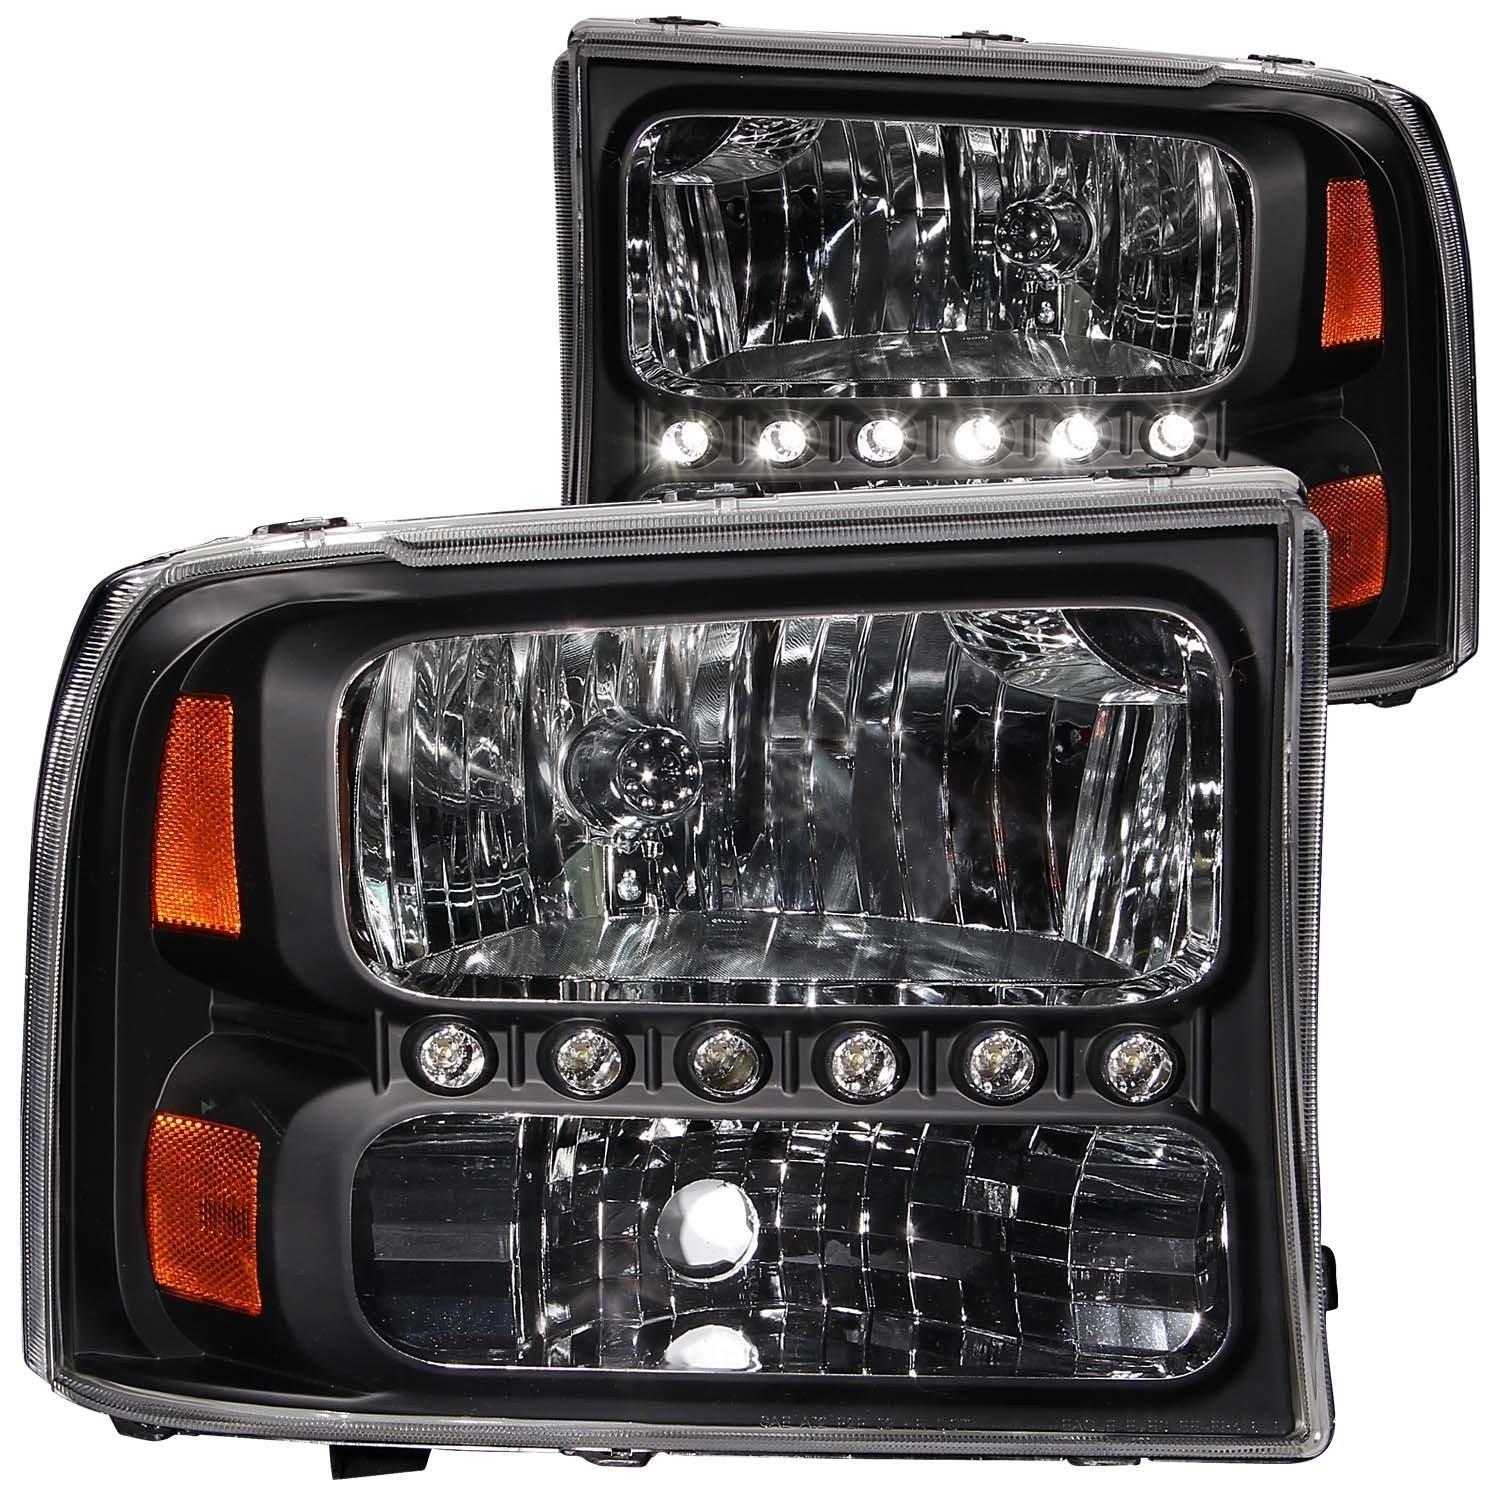 1999 2004 Ford F250 F350 Superduty Led Headlights 8 2002 F 350 Diesel Fog Lights Wiring Diagrams Bumper Light Automotive